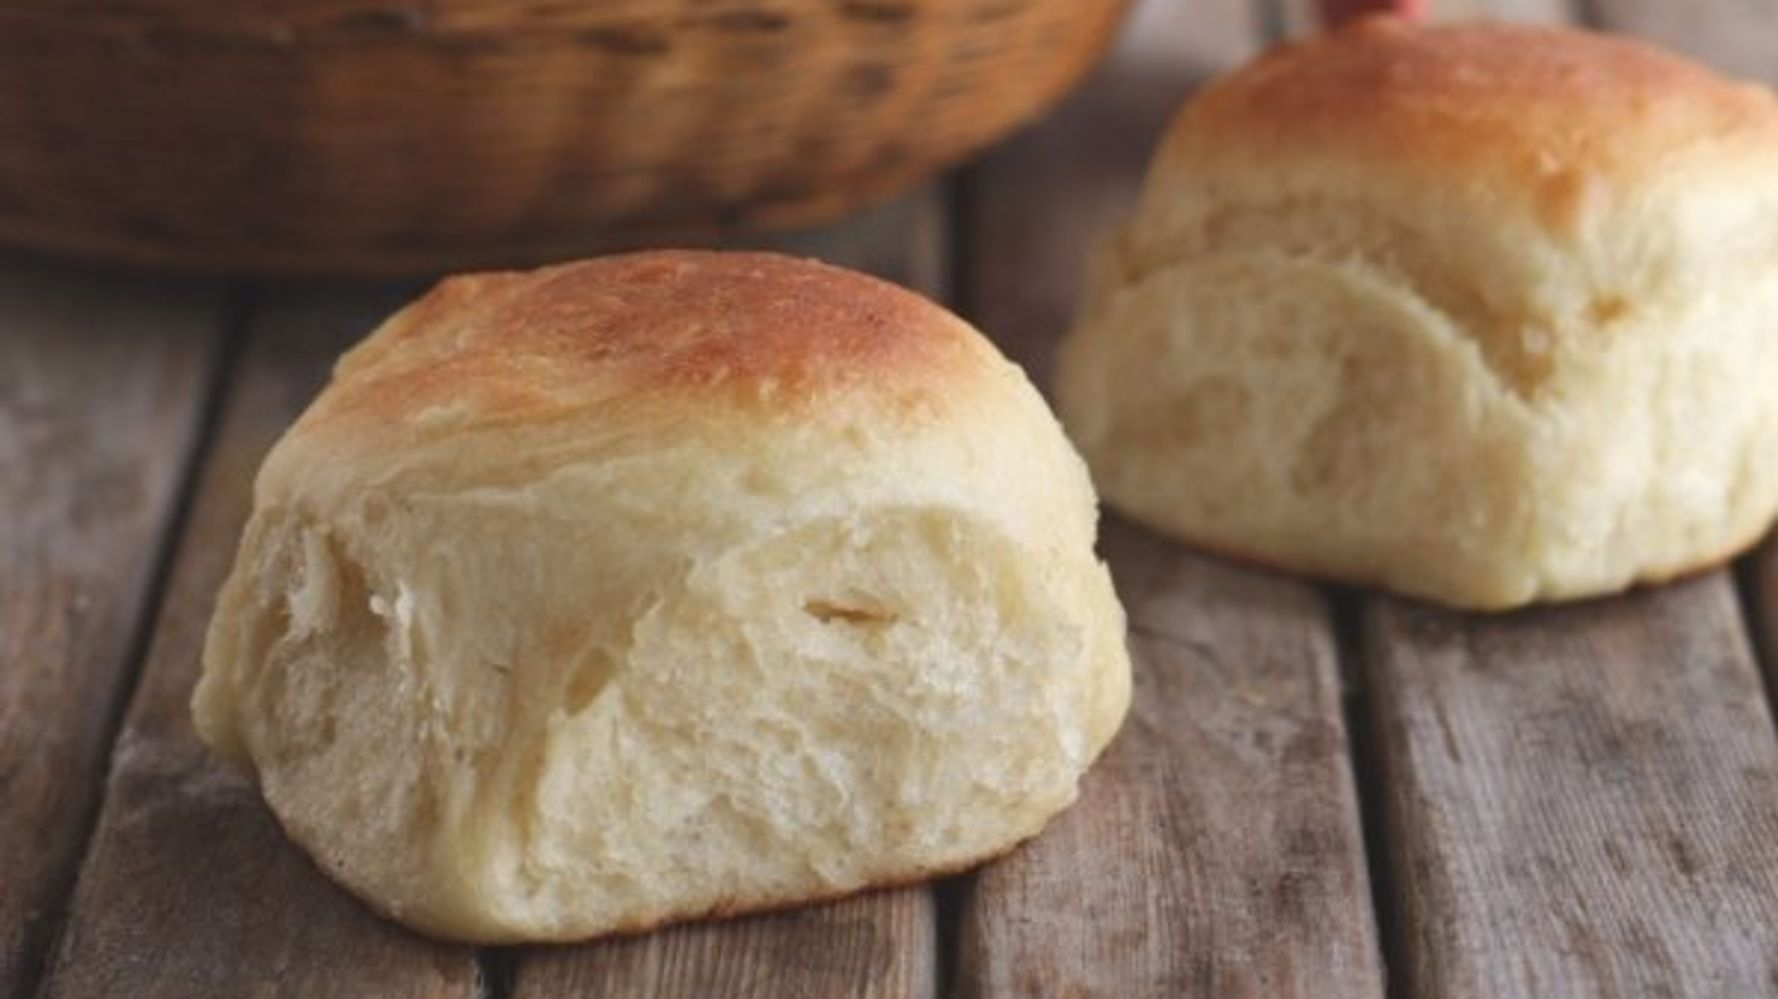 The Dinner Roll Recipes You'll Actually Want To Bake